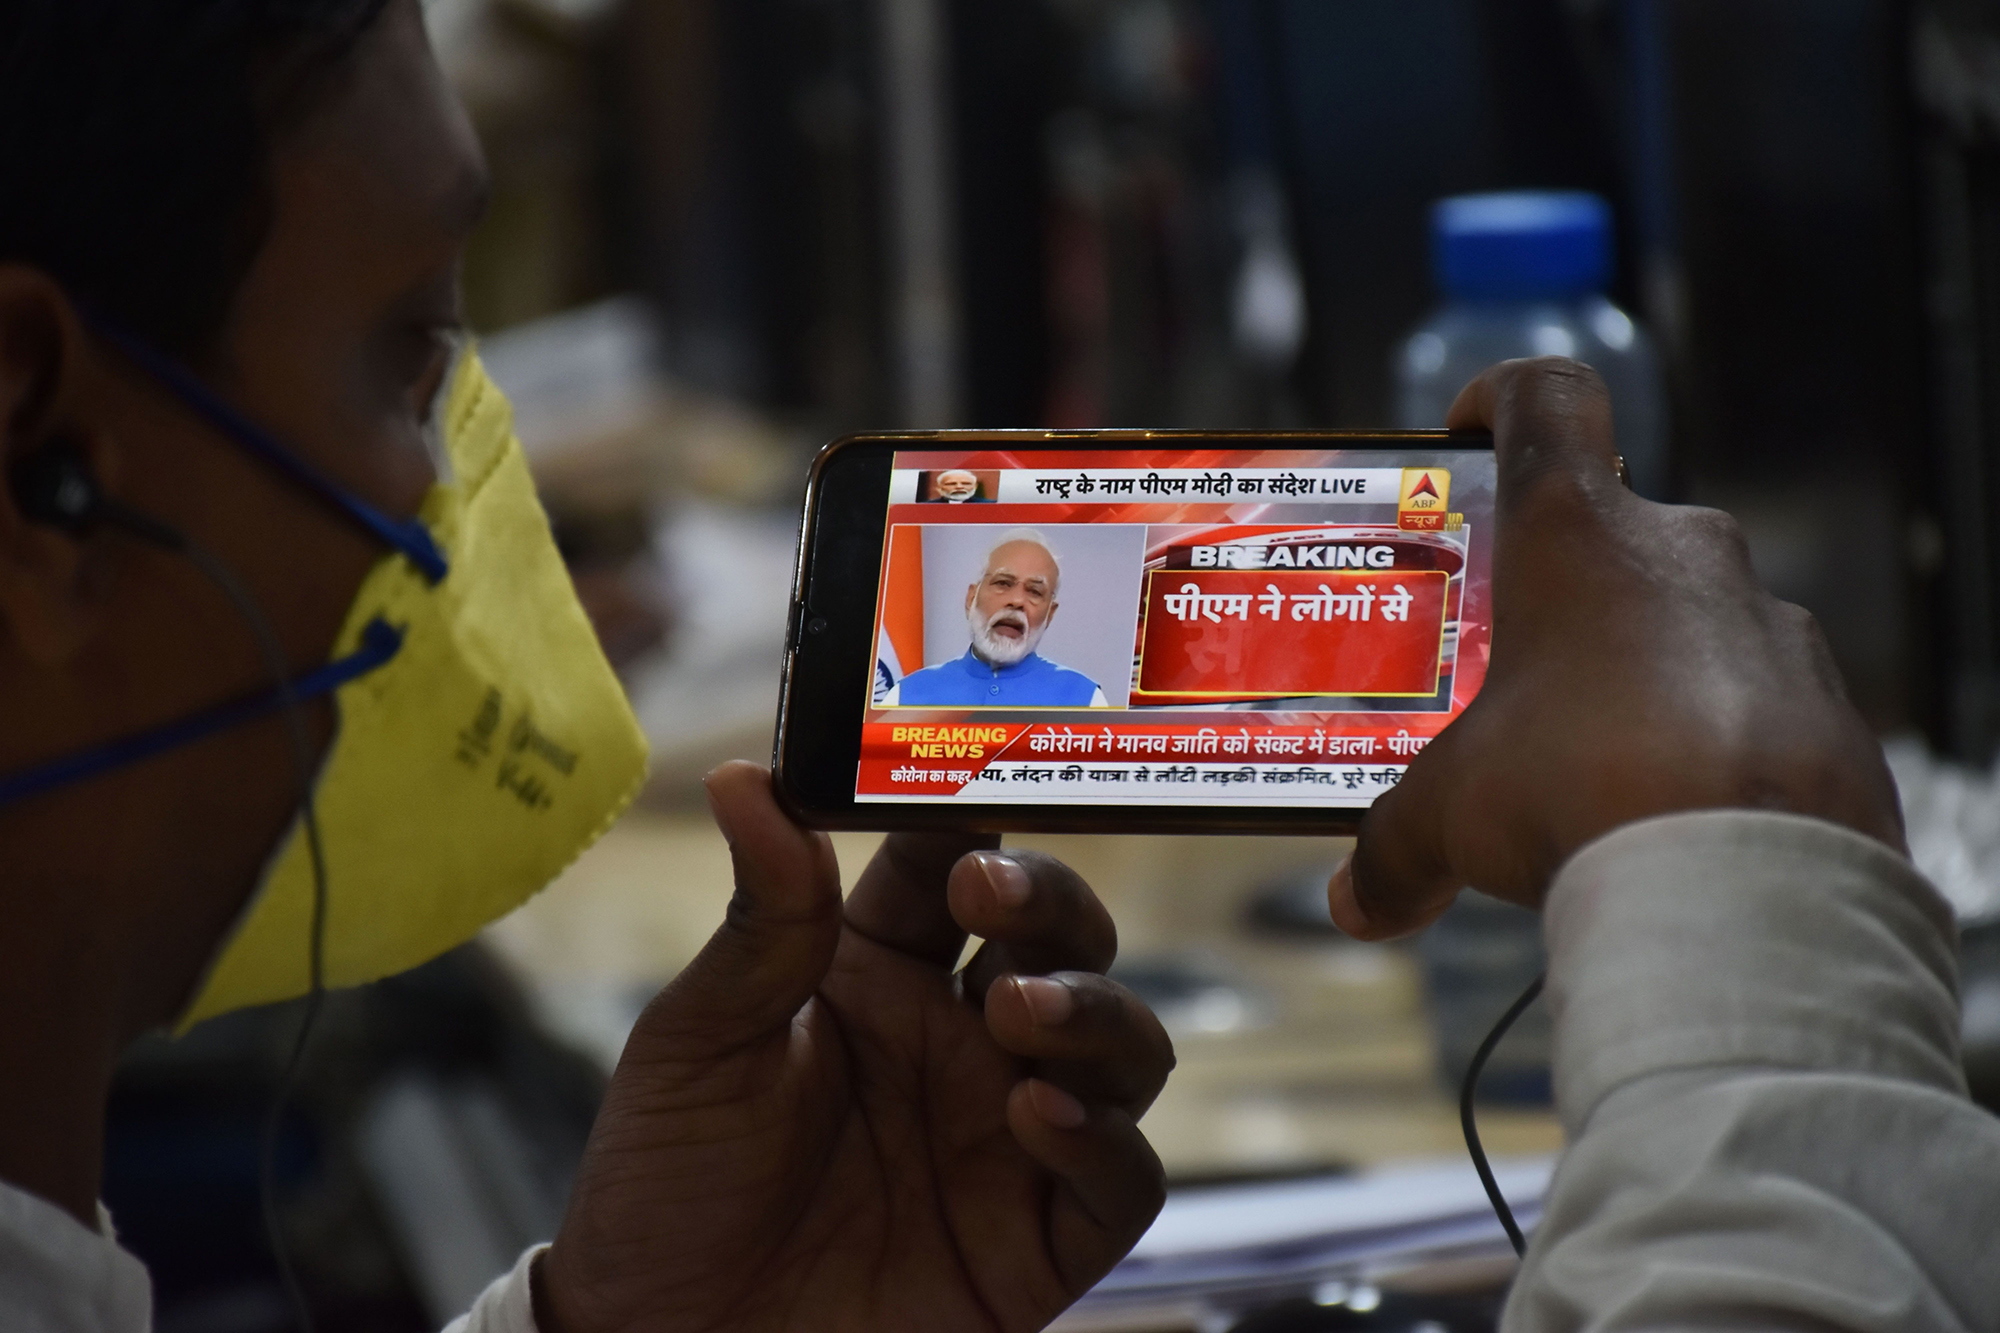 A man wearing a face mask as a preventative measure against the coronovirus listens to Prime Minister Narendra Modi's address to the nation on his mobile phone in Jabalpur on March, 19.